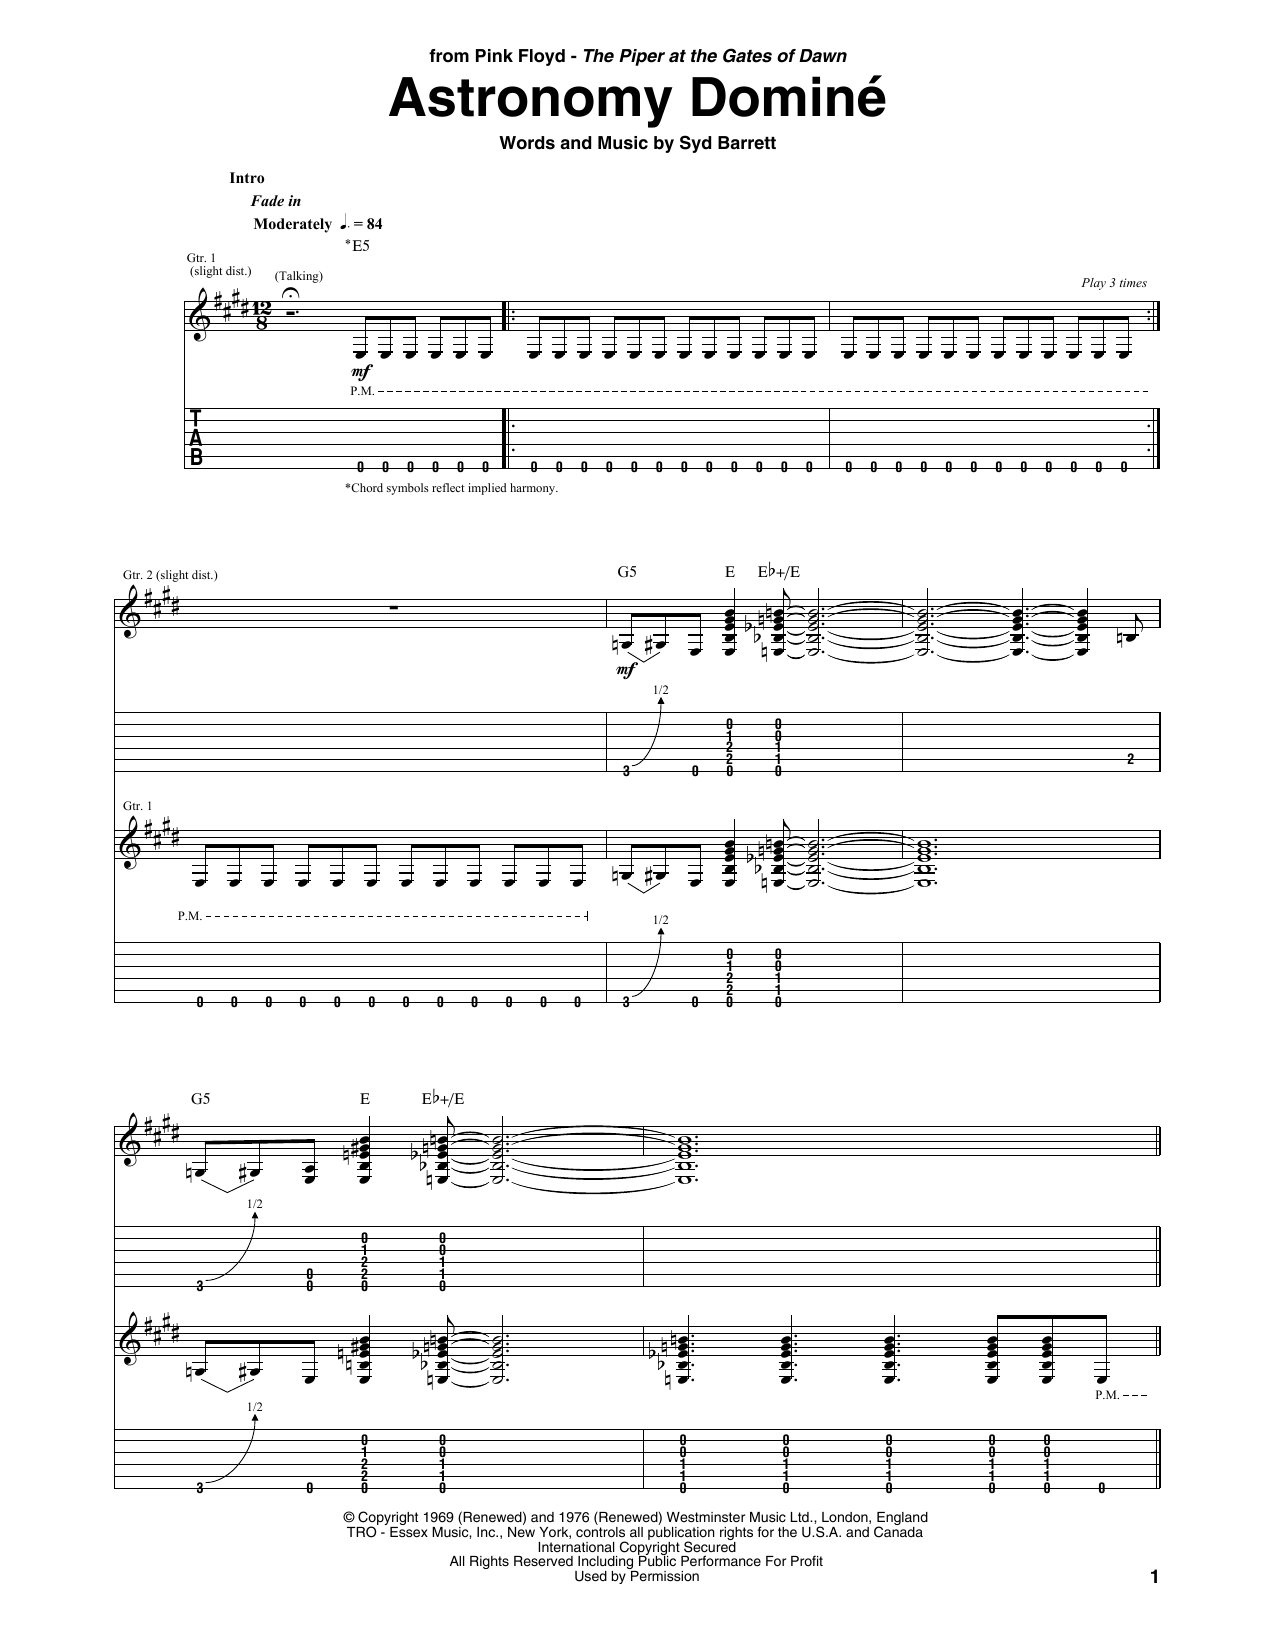 Astronomy Domine sheet music for guitar solo (tablature) by Syd Barrett